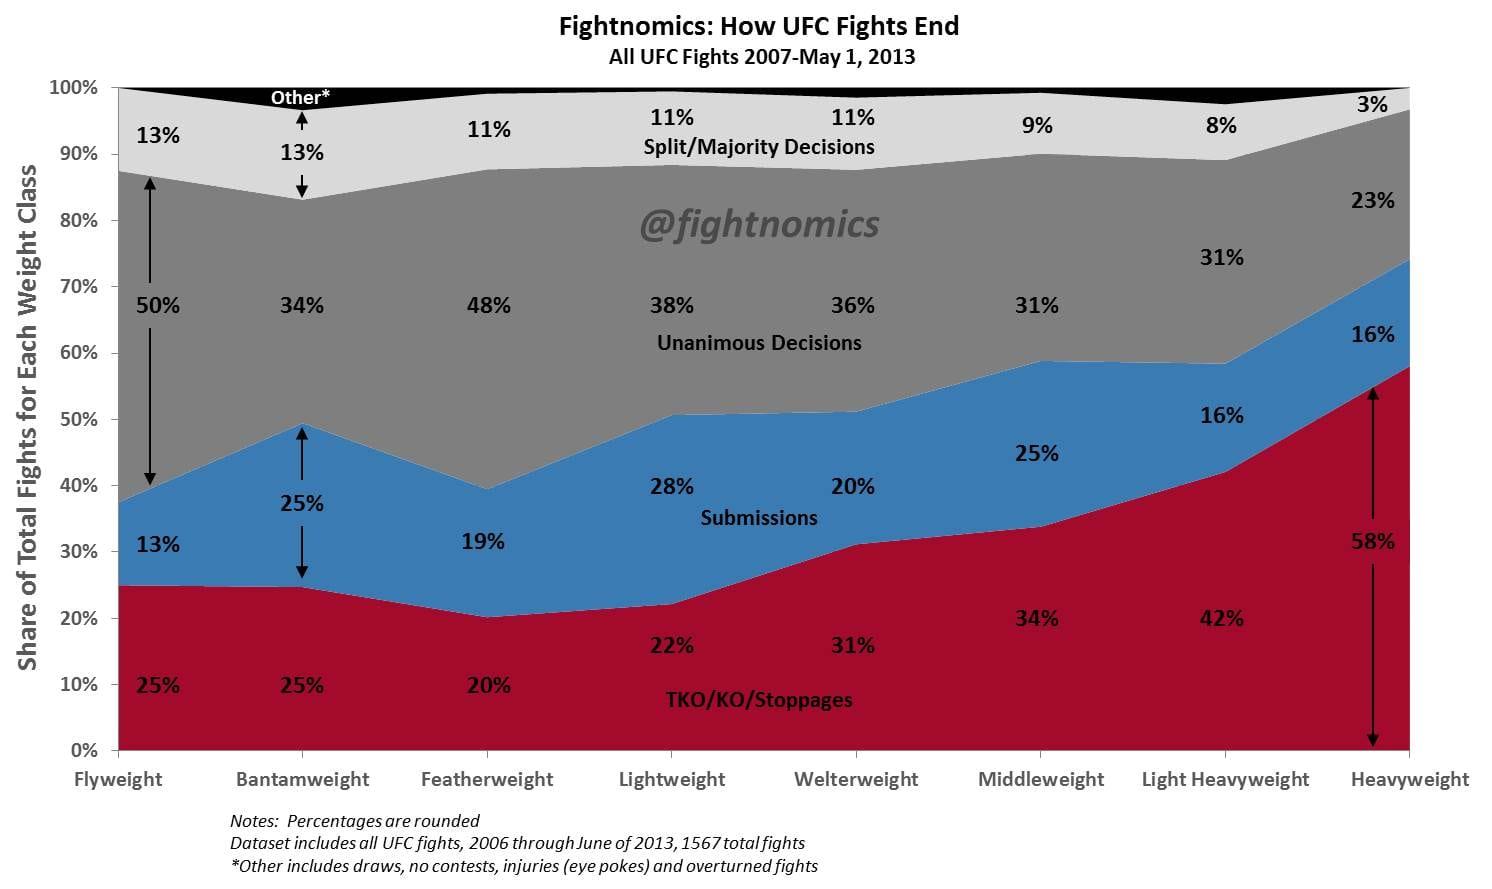 How-UFC-Fights-End-2013-Edition